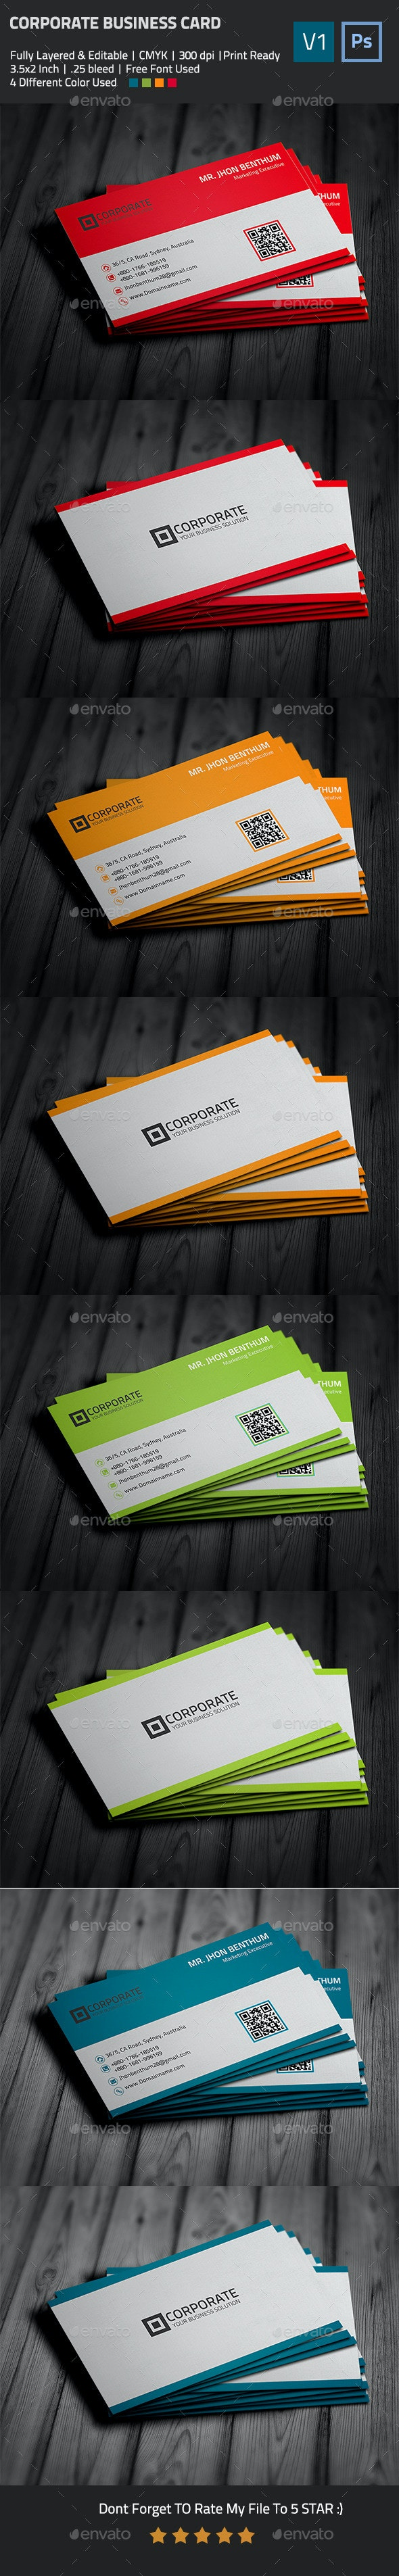 Simple Business Card - Business Cards Print Templates